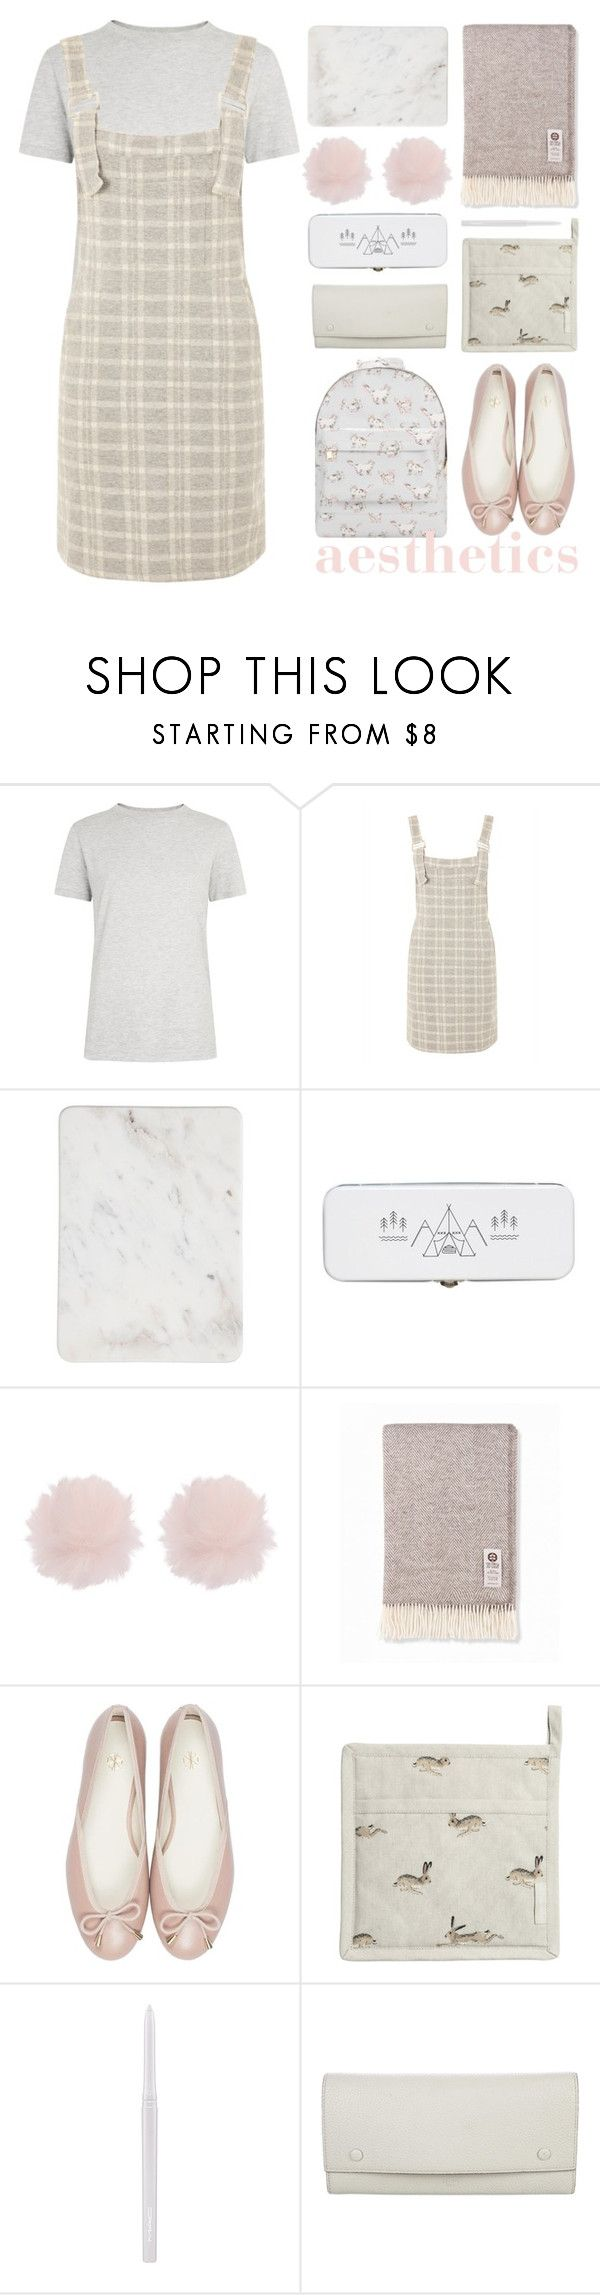 """""""calm"""" by foundlostme ❤ liked on Polyvore featuring SELECTED, Topshop, Sophie Allport, MAC Cosmetics, CÉLINE, Mi-Pac, soft and pastel"""